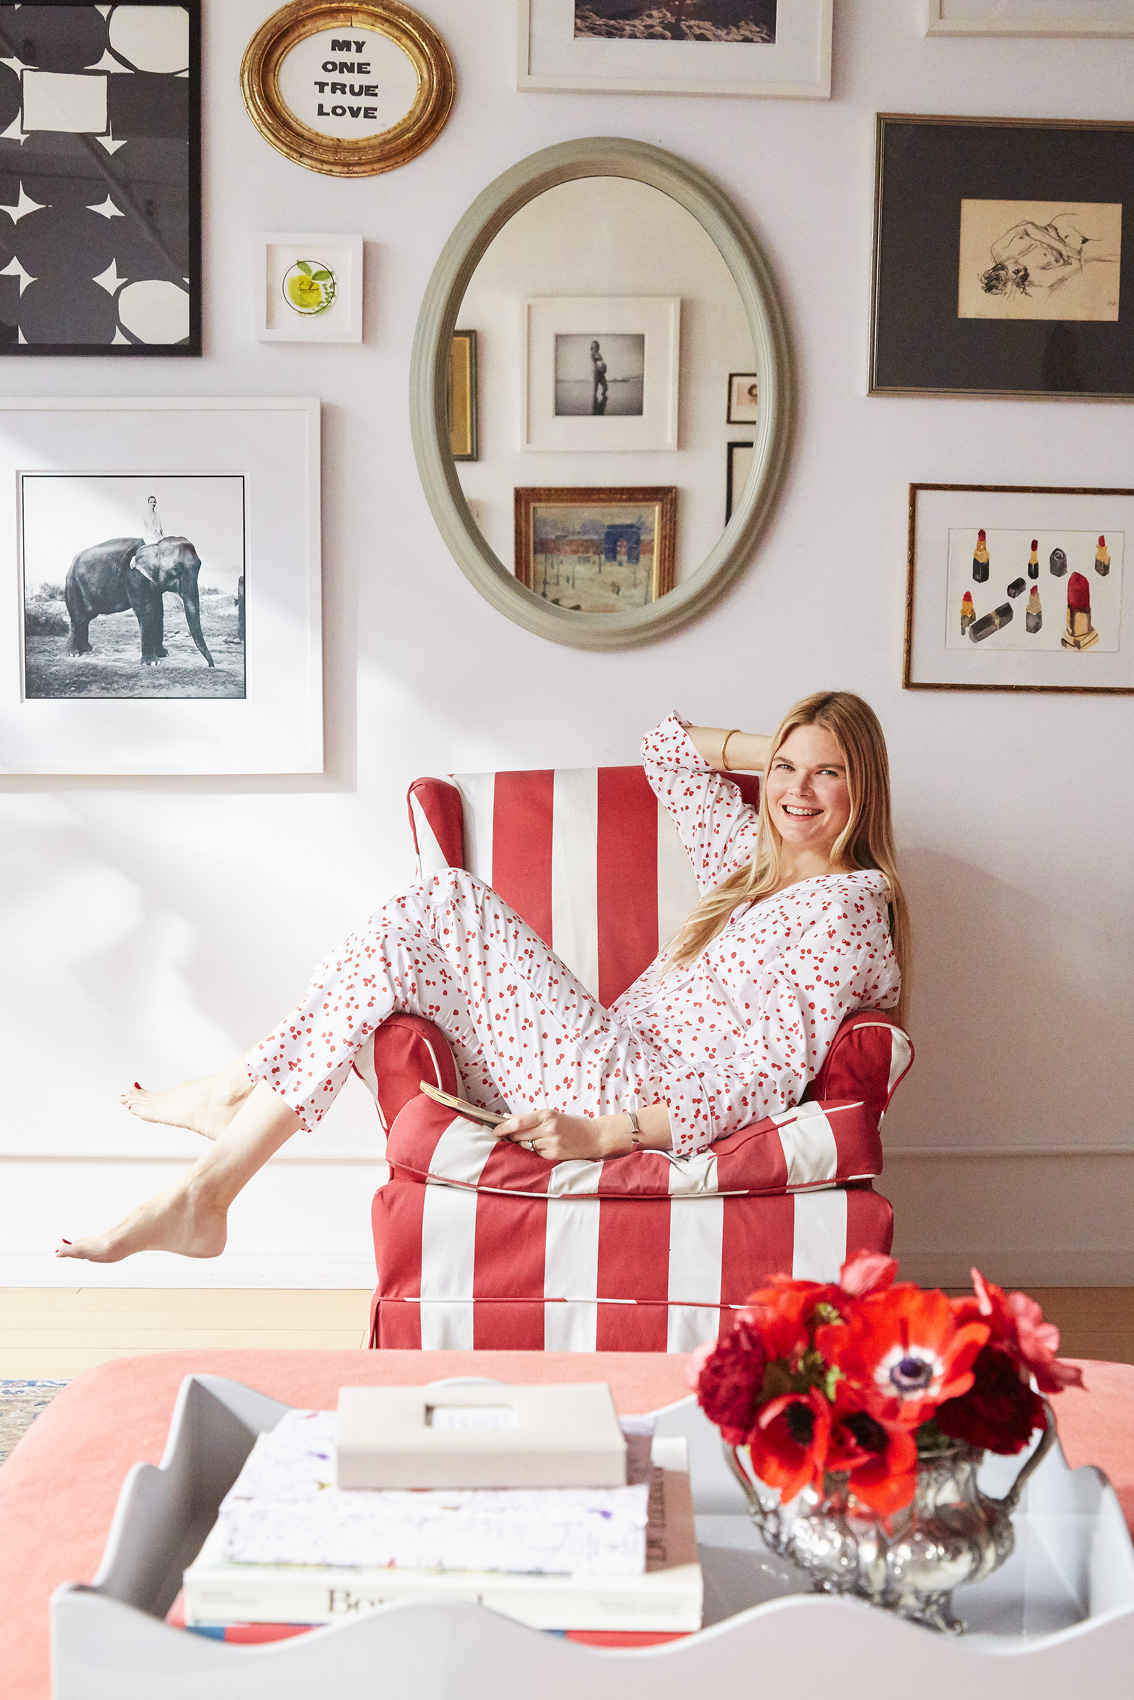 kate-schelter_sleepy-jones_portrait_pajamas_ty-mecham